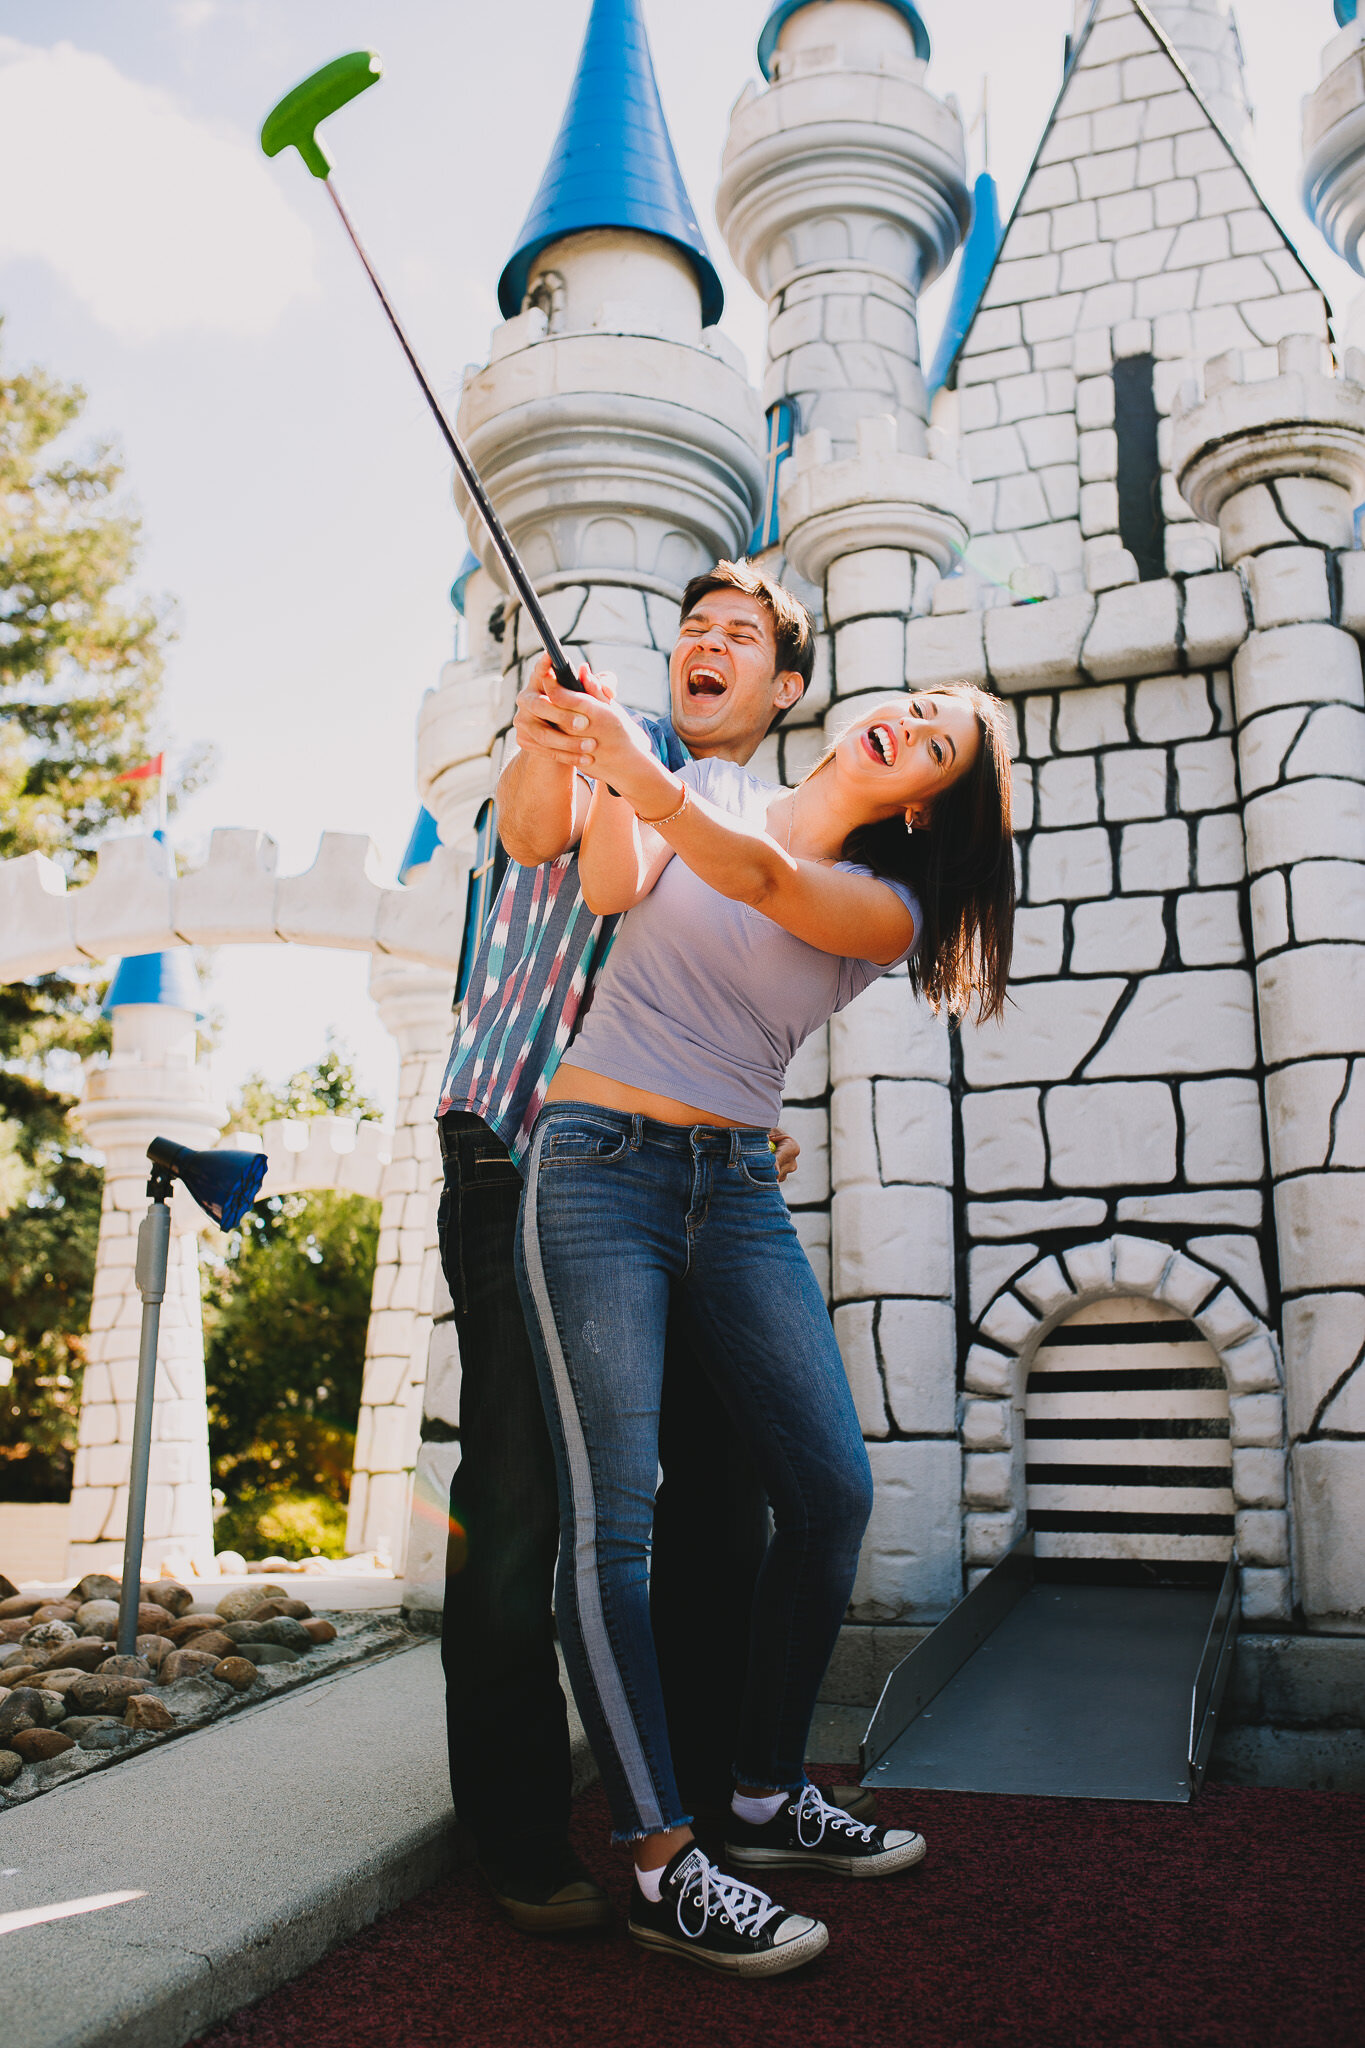 Archer Inspired Photography - Milpitas CA Golfland and Park Engagmenet Session - SoCal Wedding Photographer Long Beach LA-37.jpg